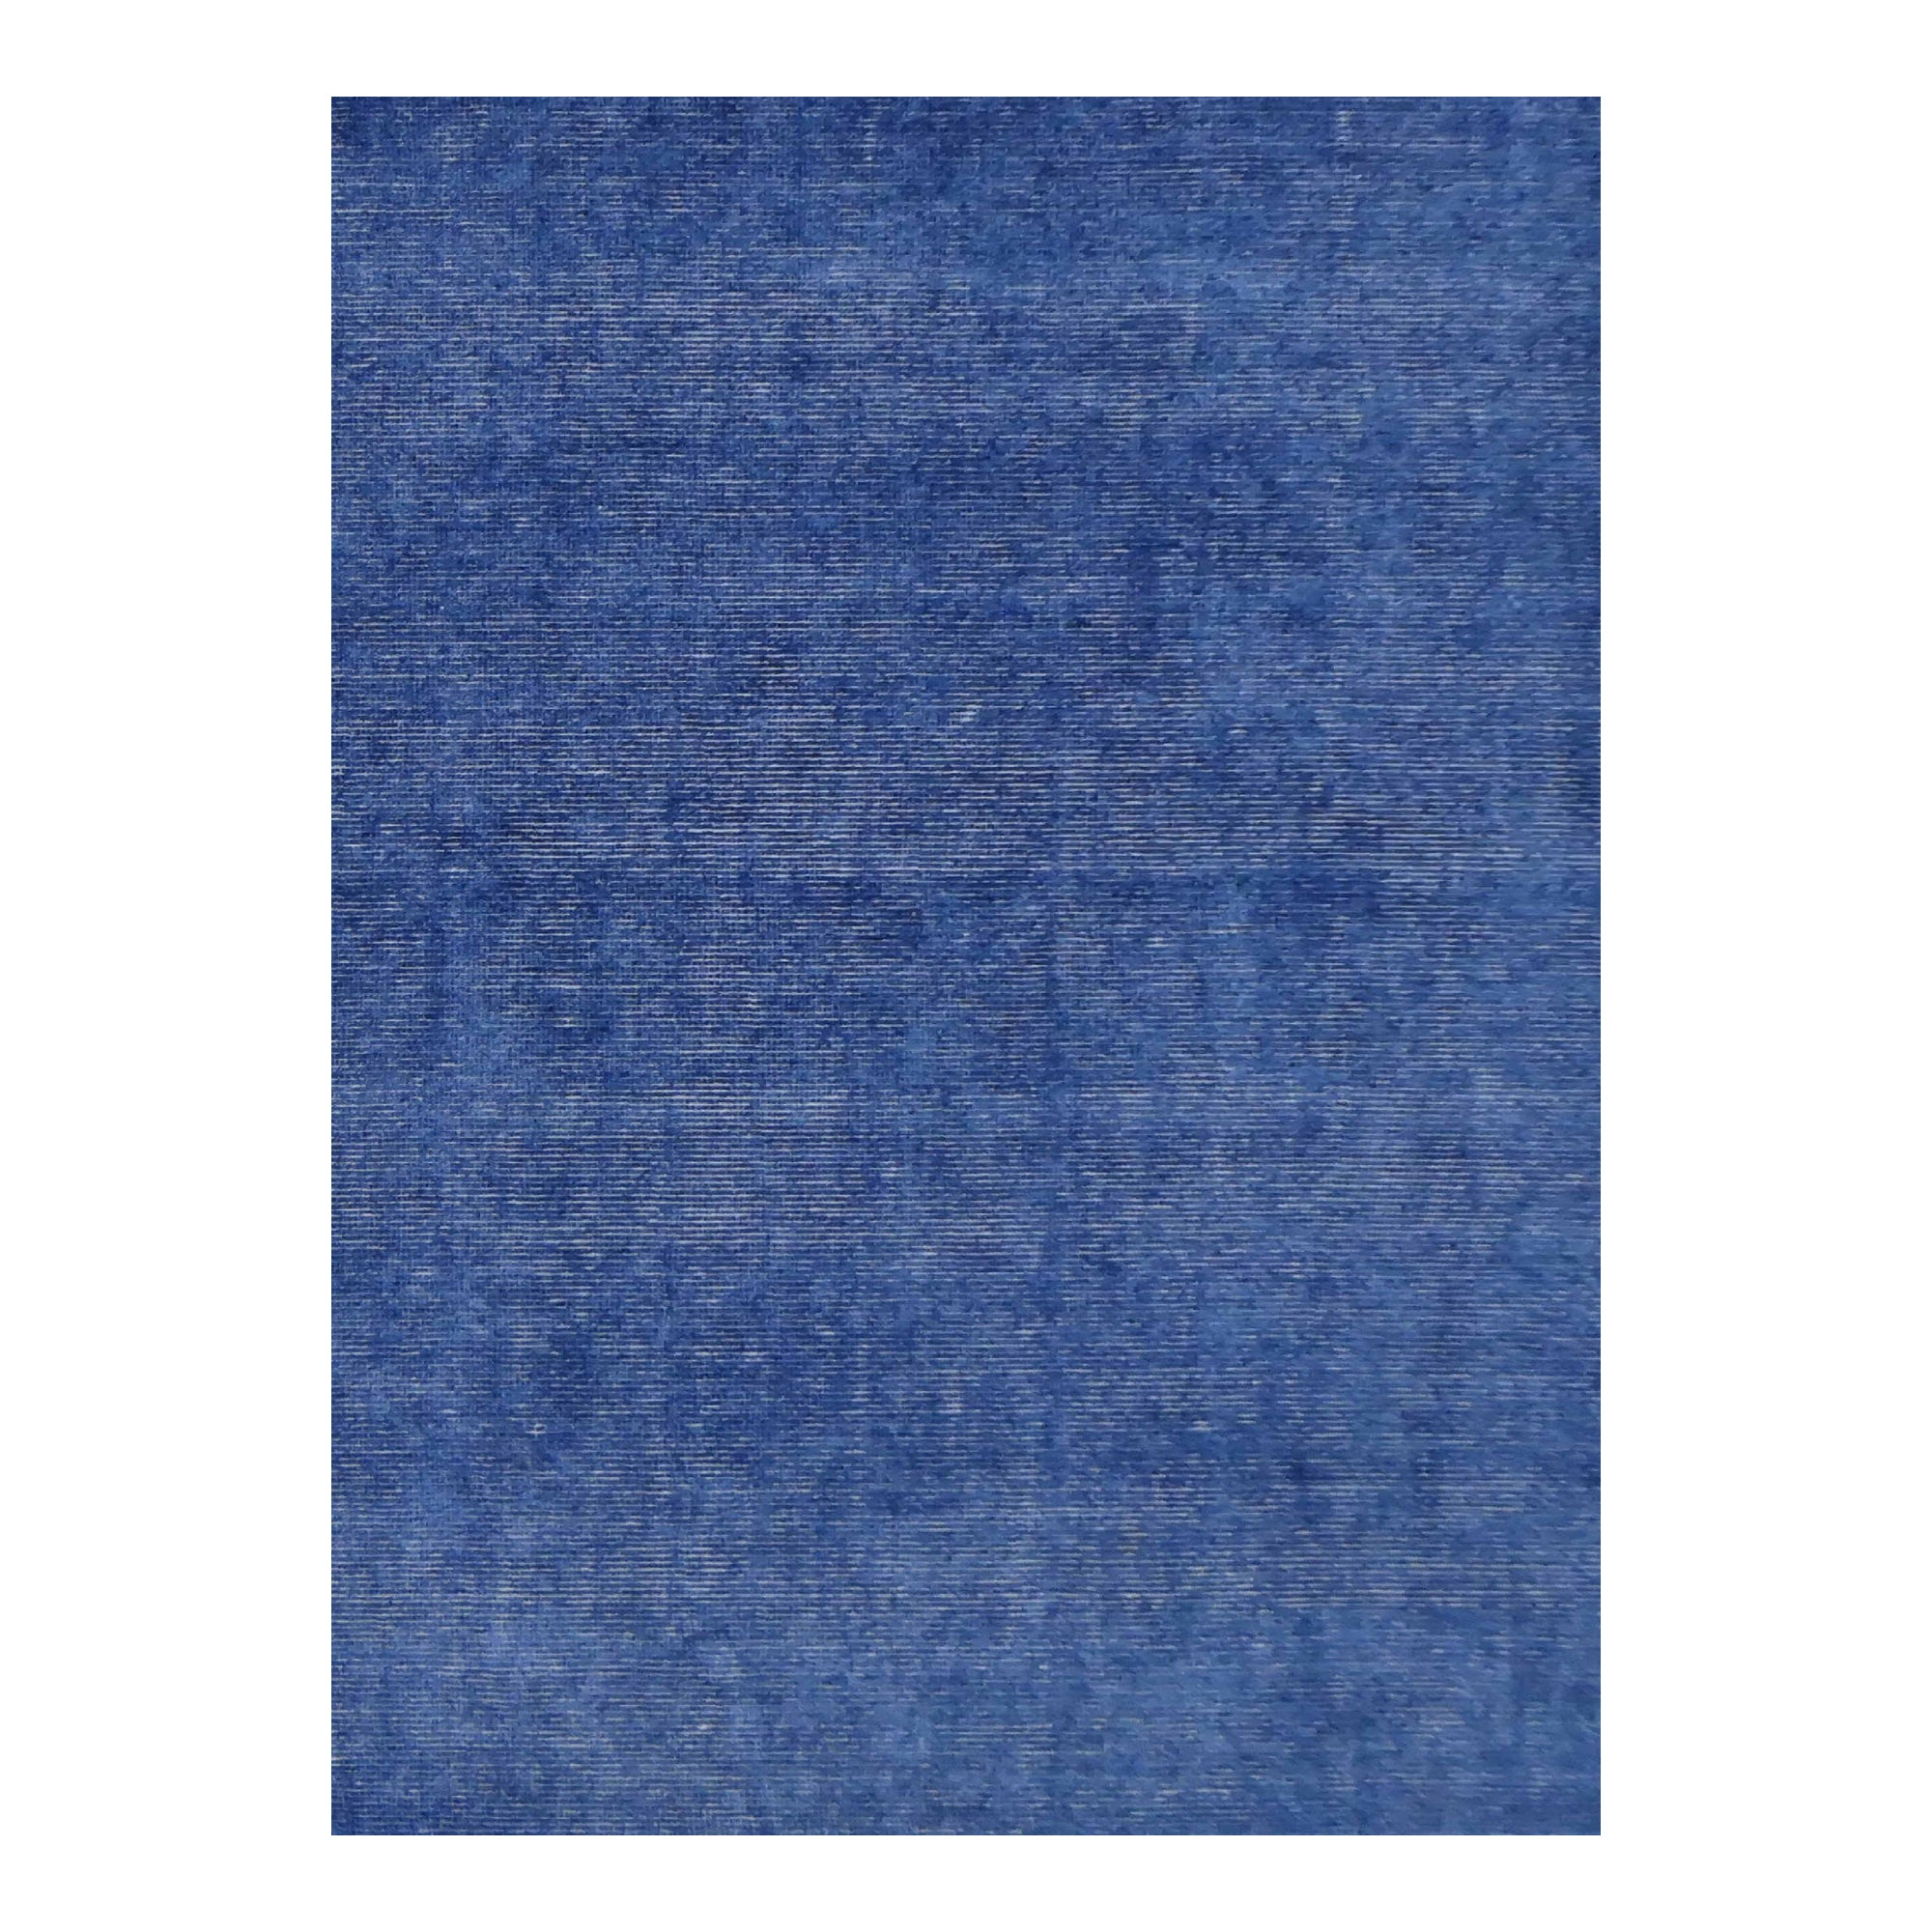 SERANO RUG 8X10, Blue - Tops-Dress